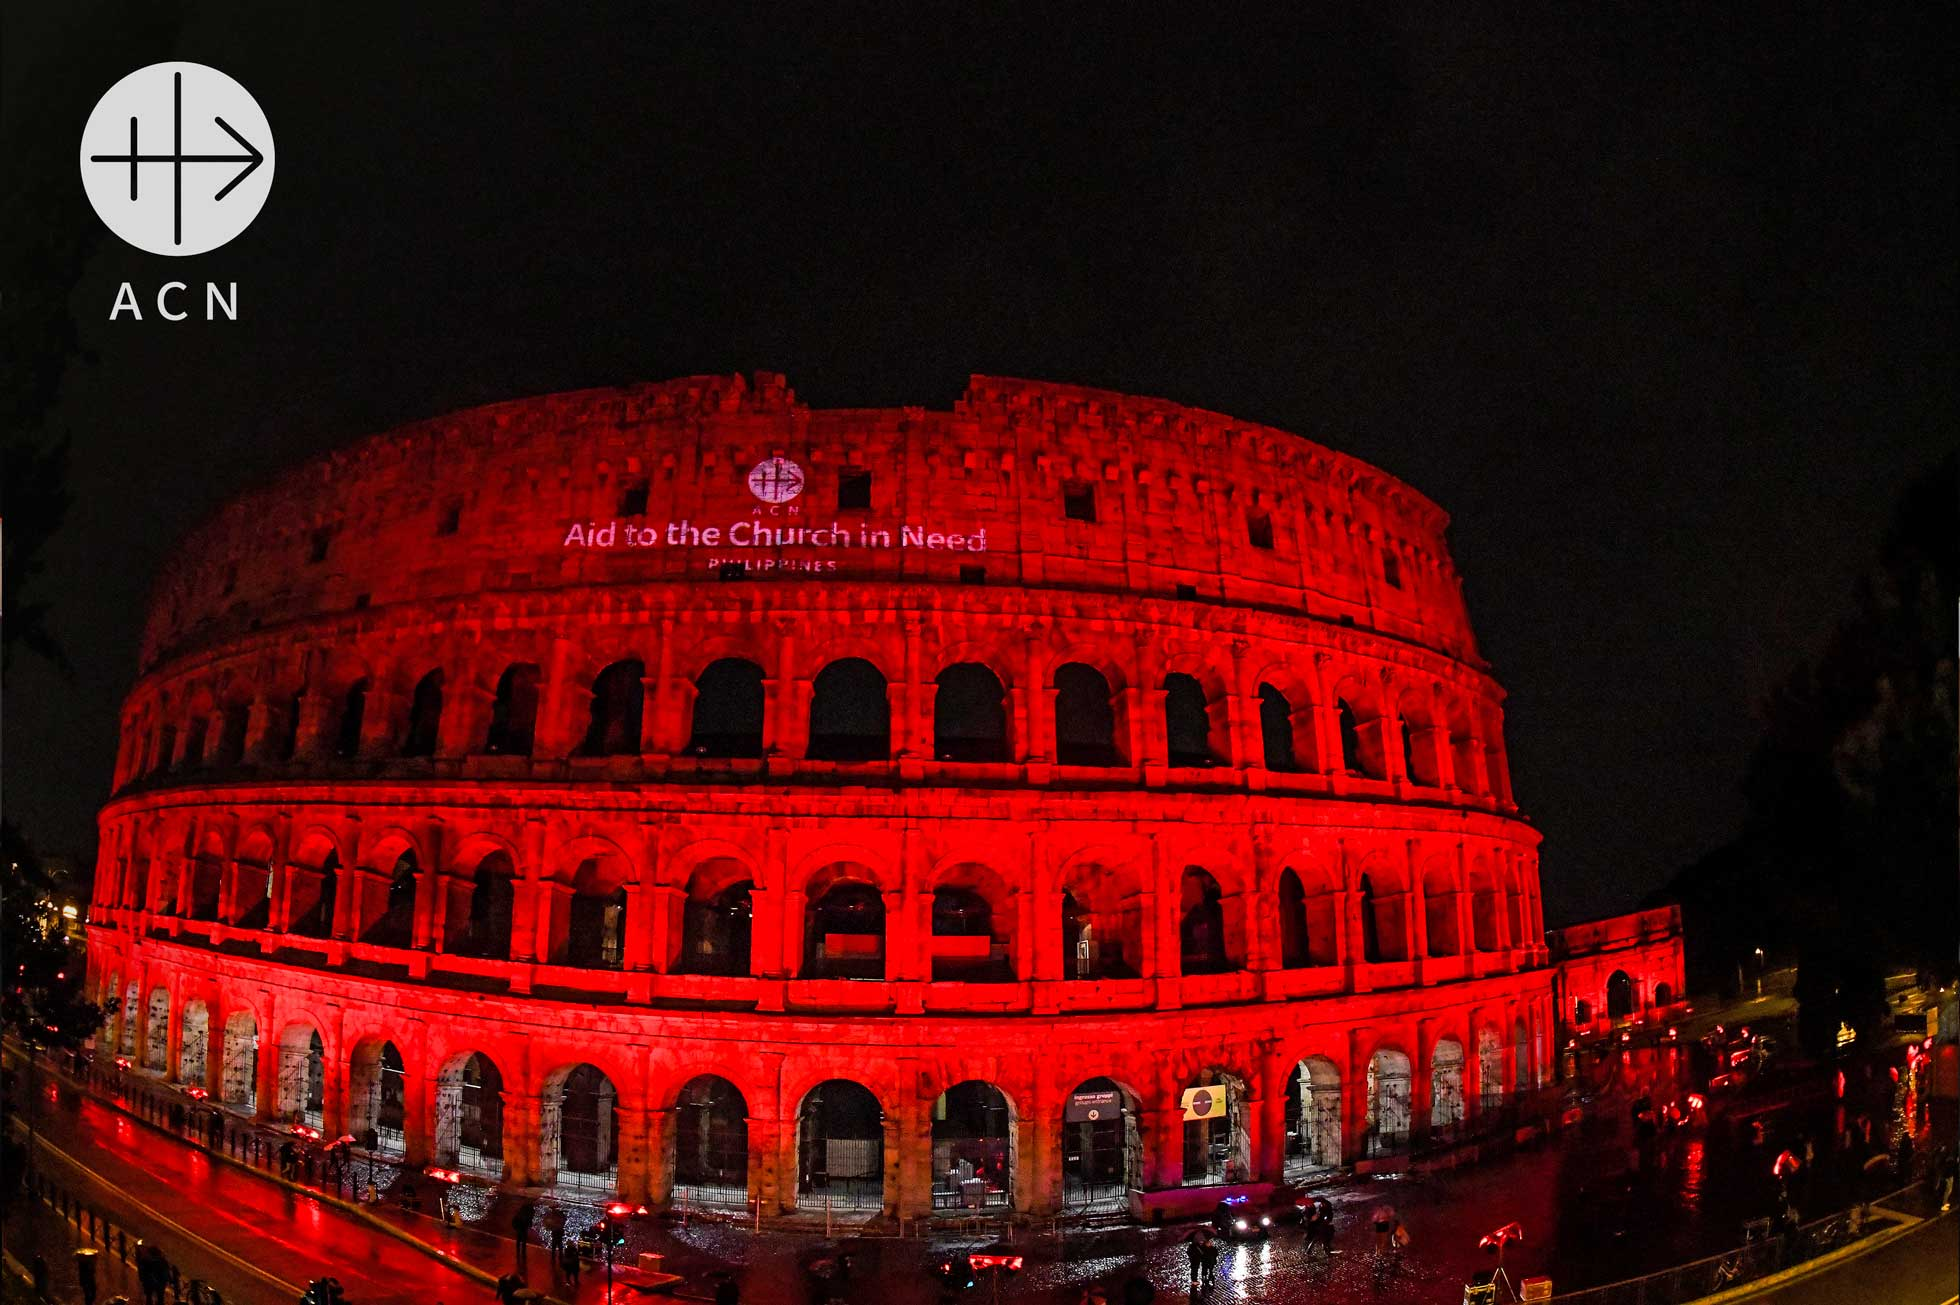 Rome's Colosseum is bathed in red light on February 24 in a show of solidarity with Christian's martyred around the world. Photo: Aid the Church in Need/ https://www.facebook.com/acninternationalorg